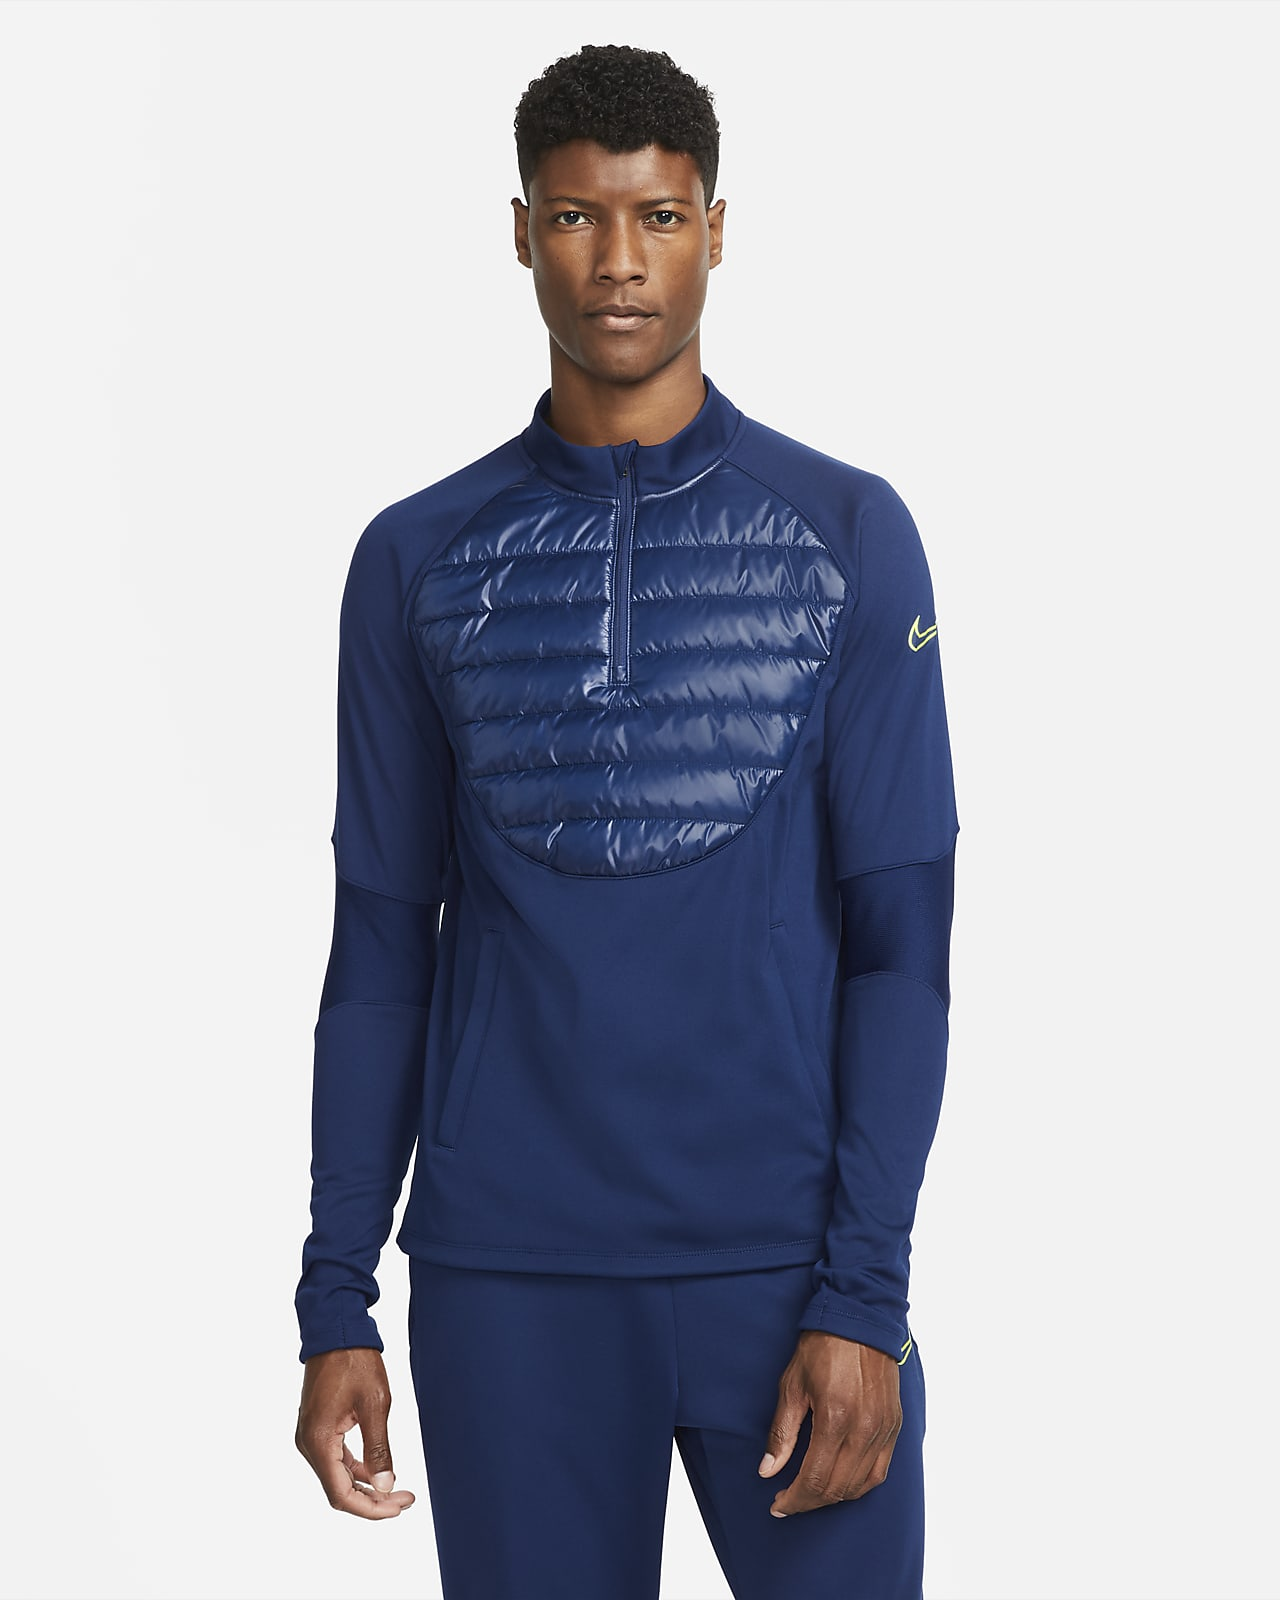 Nike Therma-FIT Academy Winter Warrior Men's Soccer Drill Top